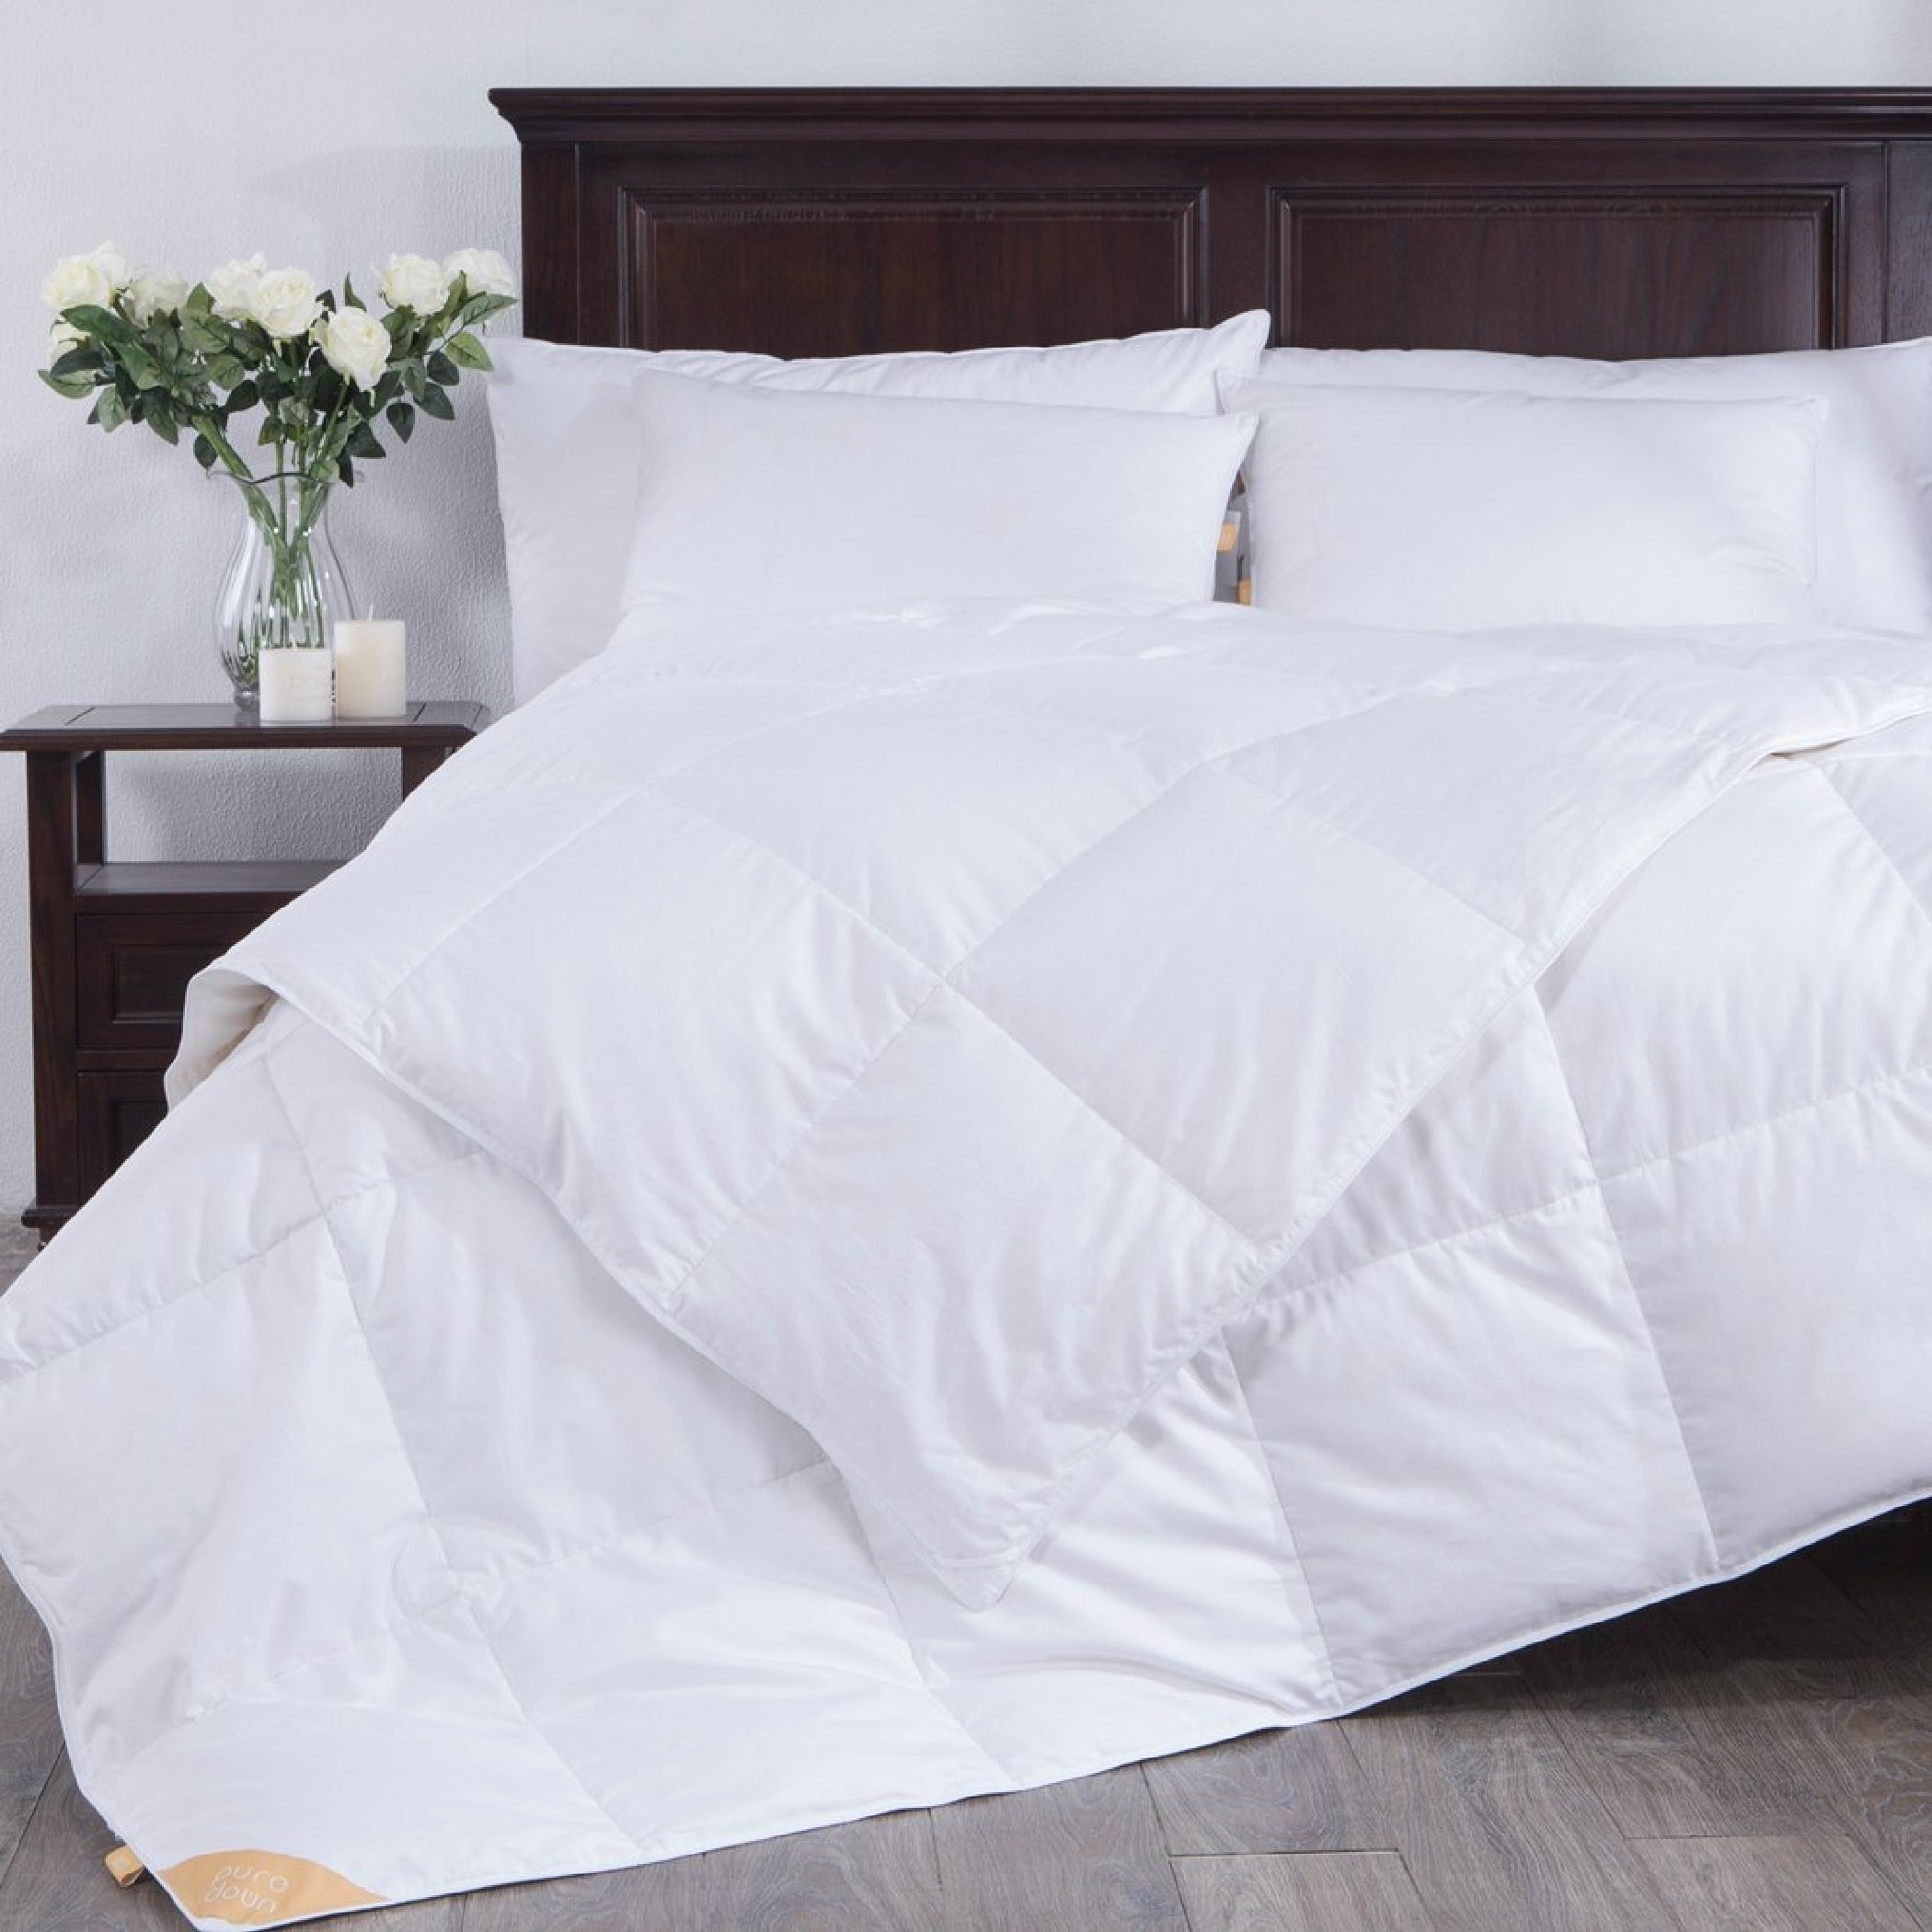 catalog us nsb r a queen buy warmer h comforter products full en how ikea down to